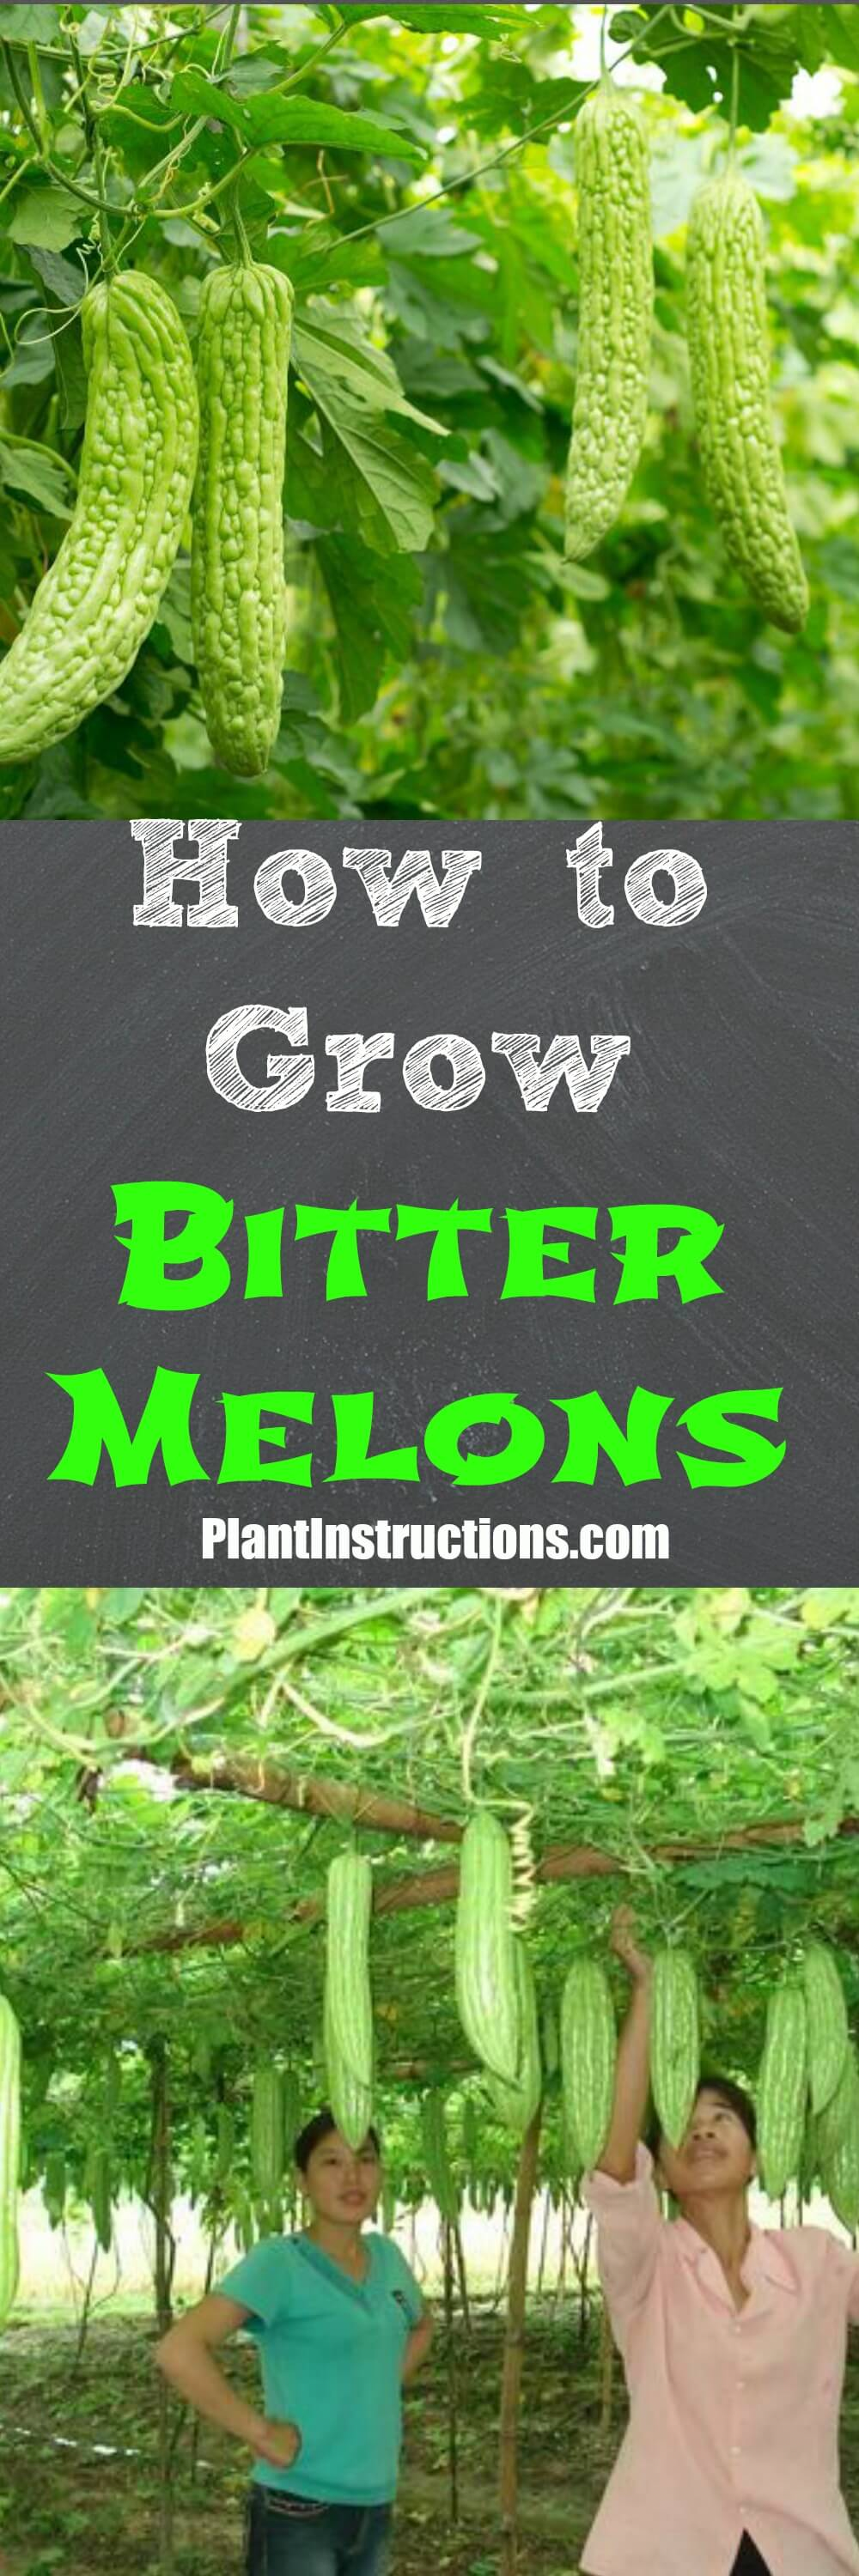 How To Grow It And How To Use It For: How To Grow Bitter Melon